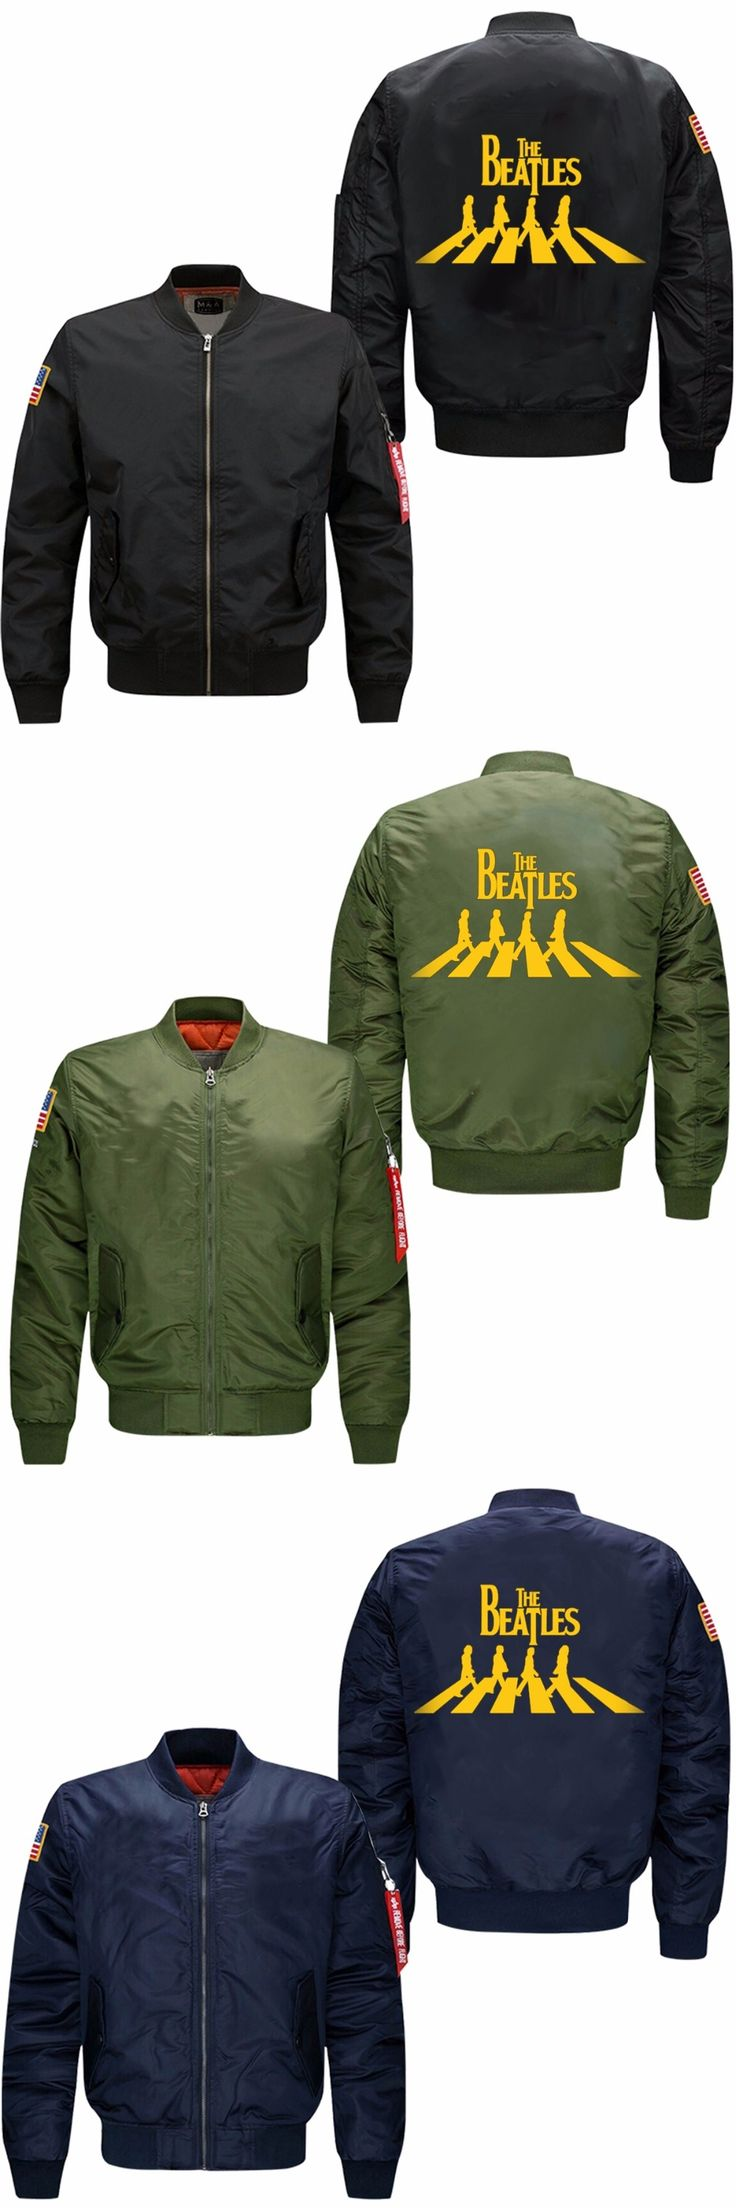 2017 Winter Jackets For Men The Classical English Band The Beatles Men's Coats and Jackets